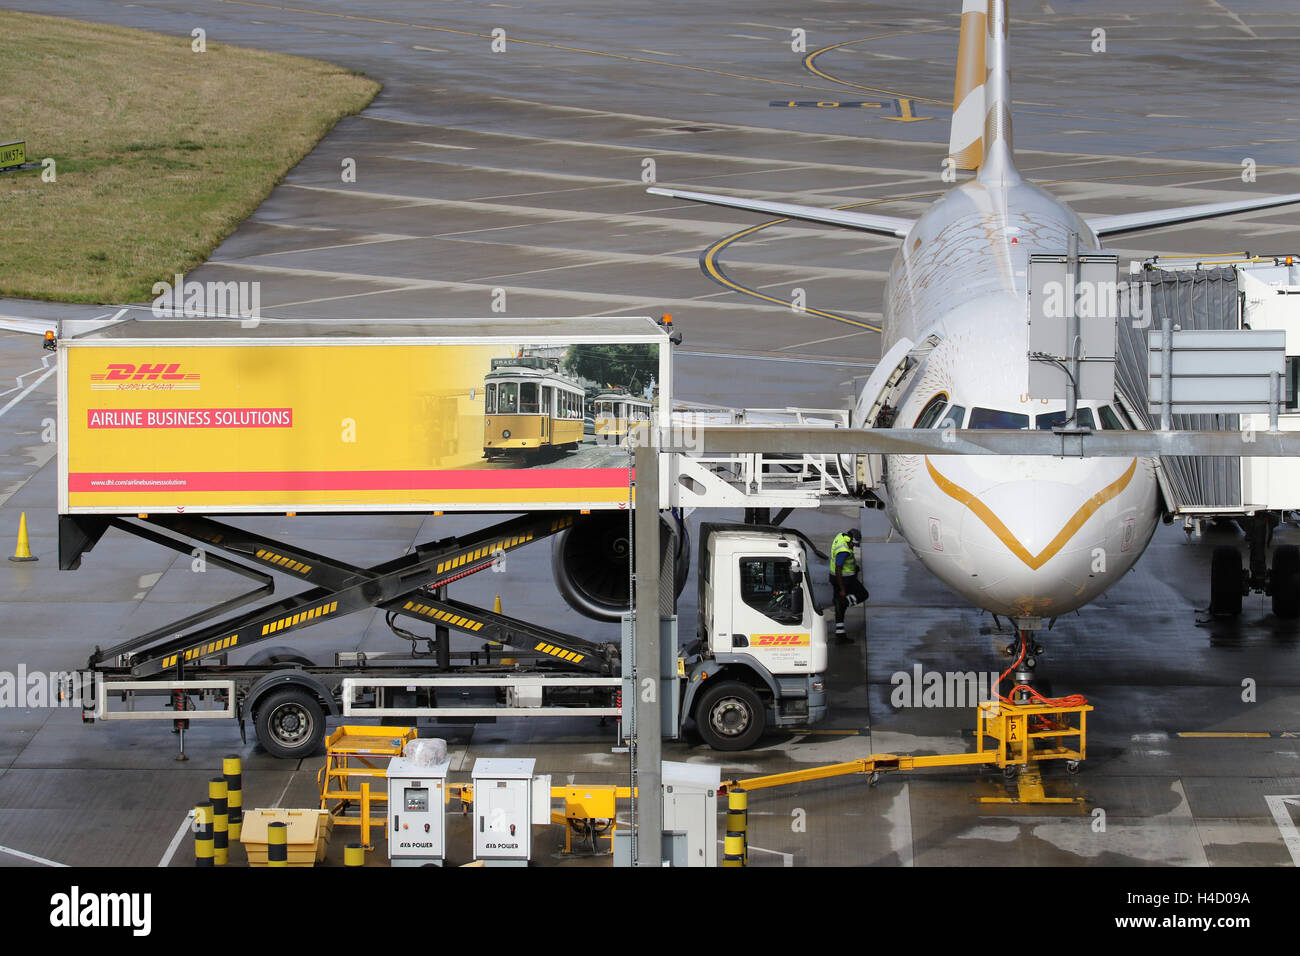 DHL CATERING AIRCRAFT BRITISH AIRWAYS - Stock Image